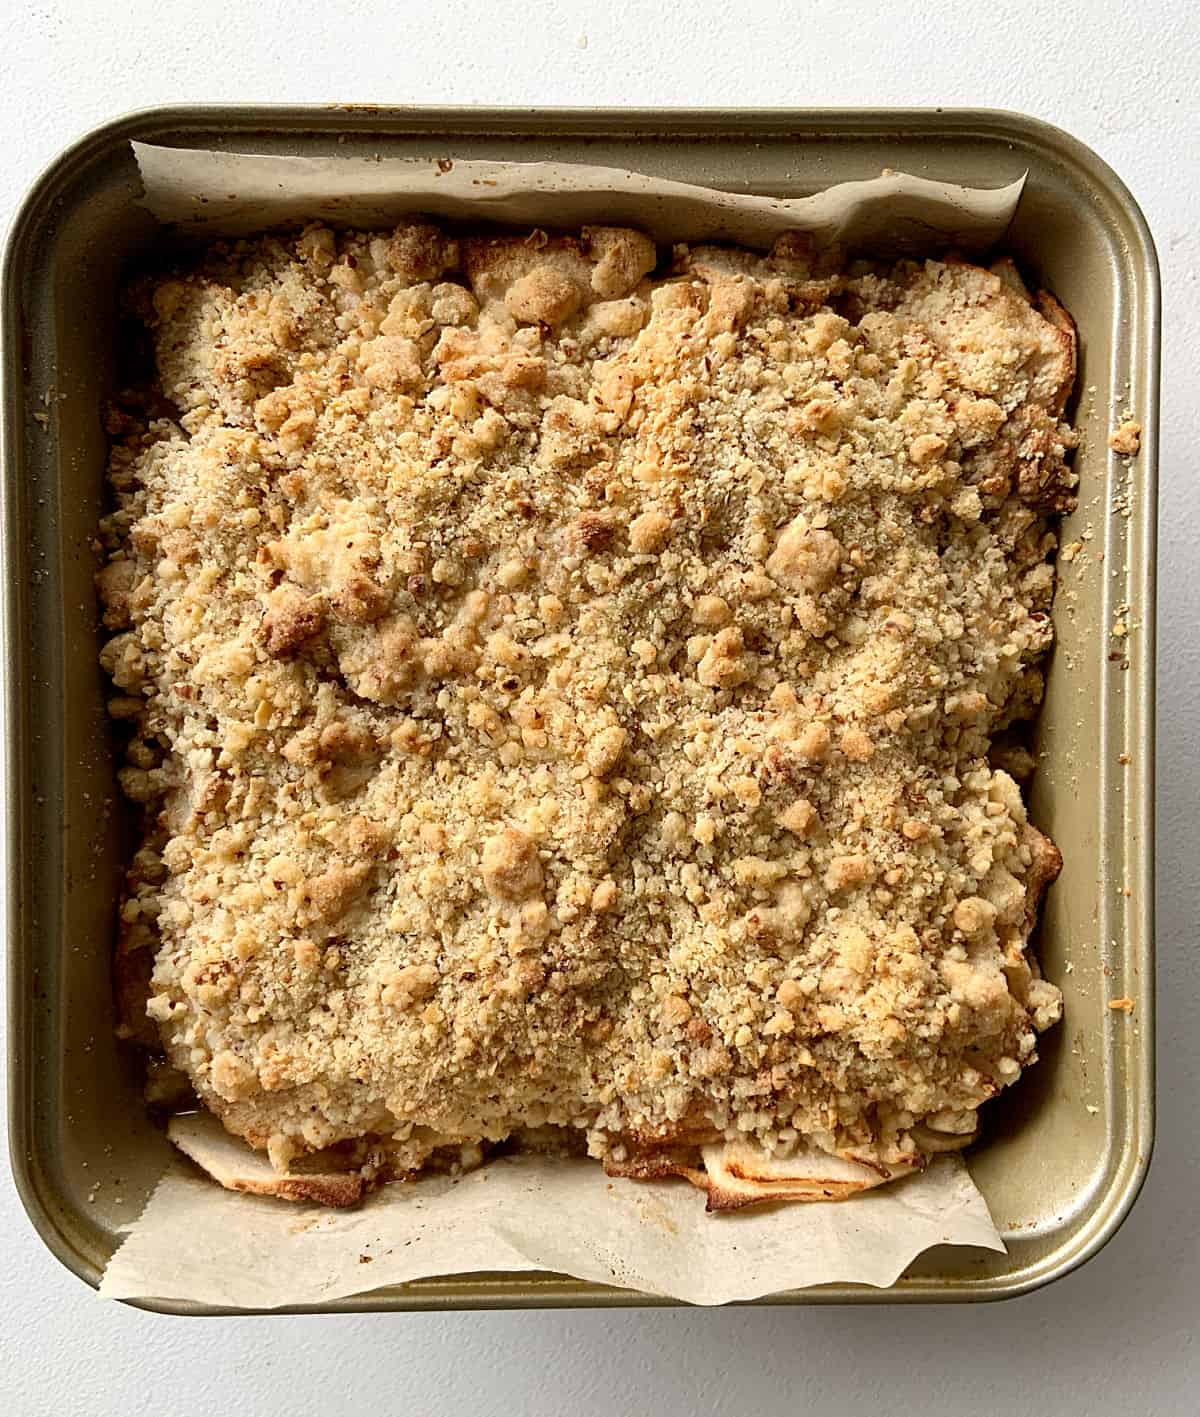 Baked apple crumb dessert in metal pan with parchment paper